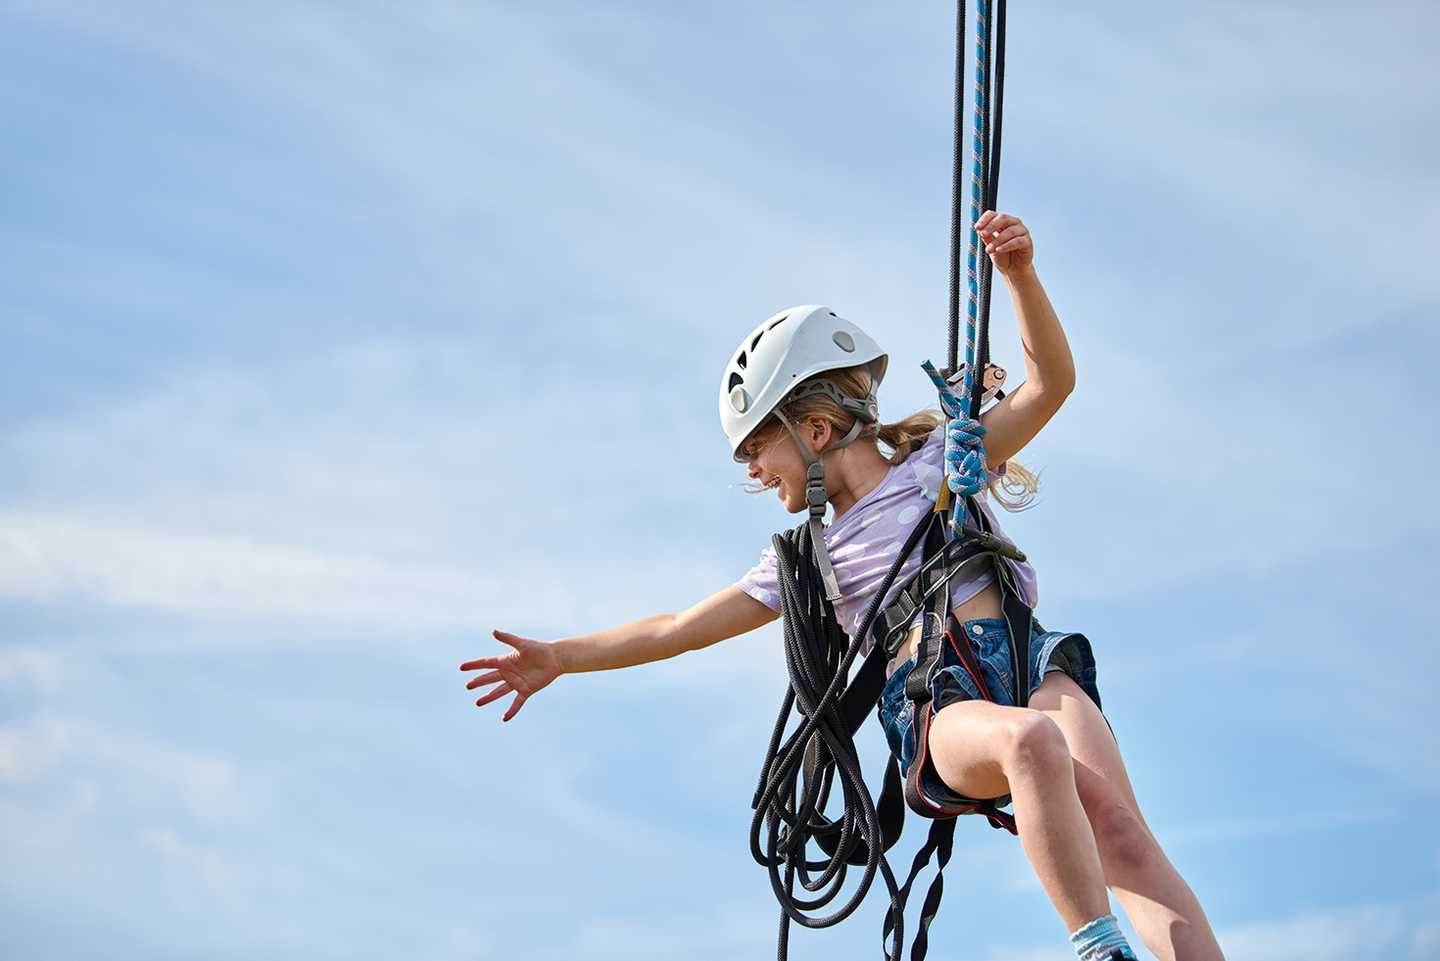 Little girl on the Zip wire